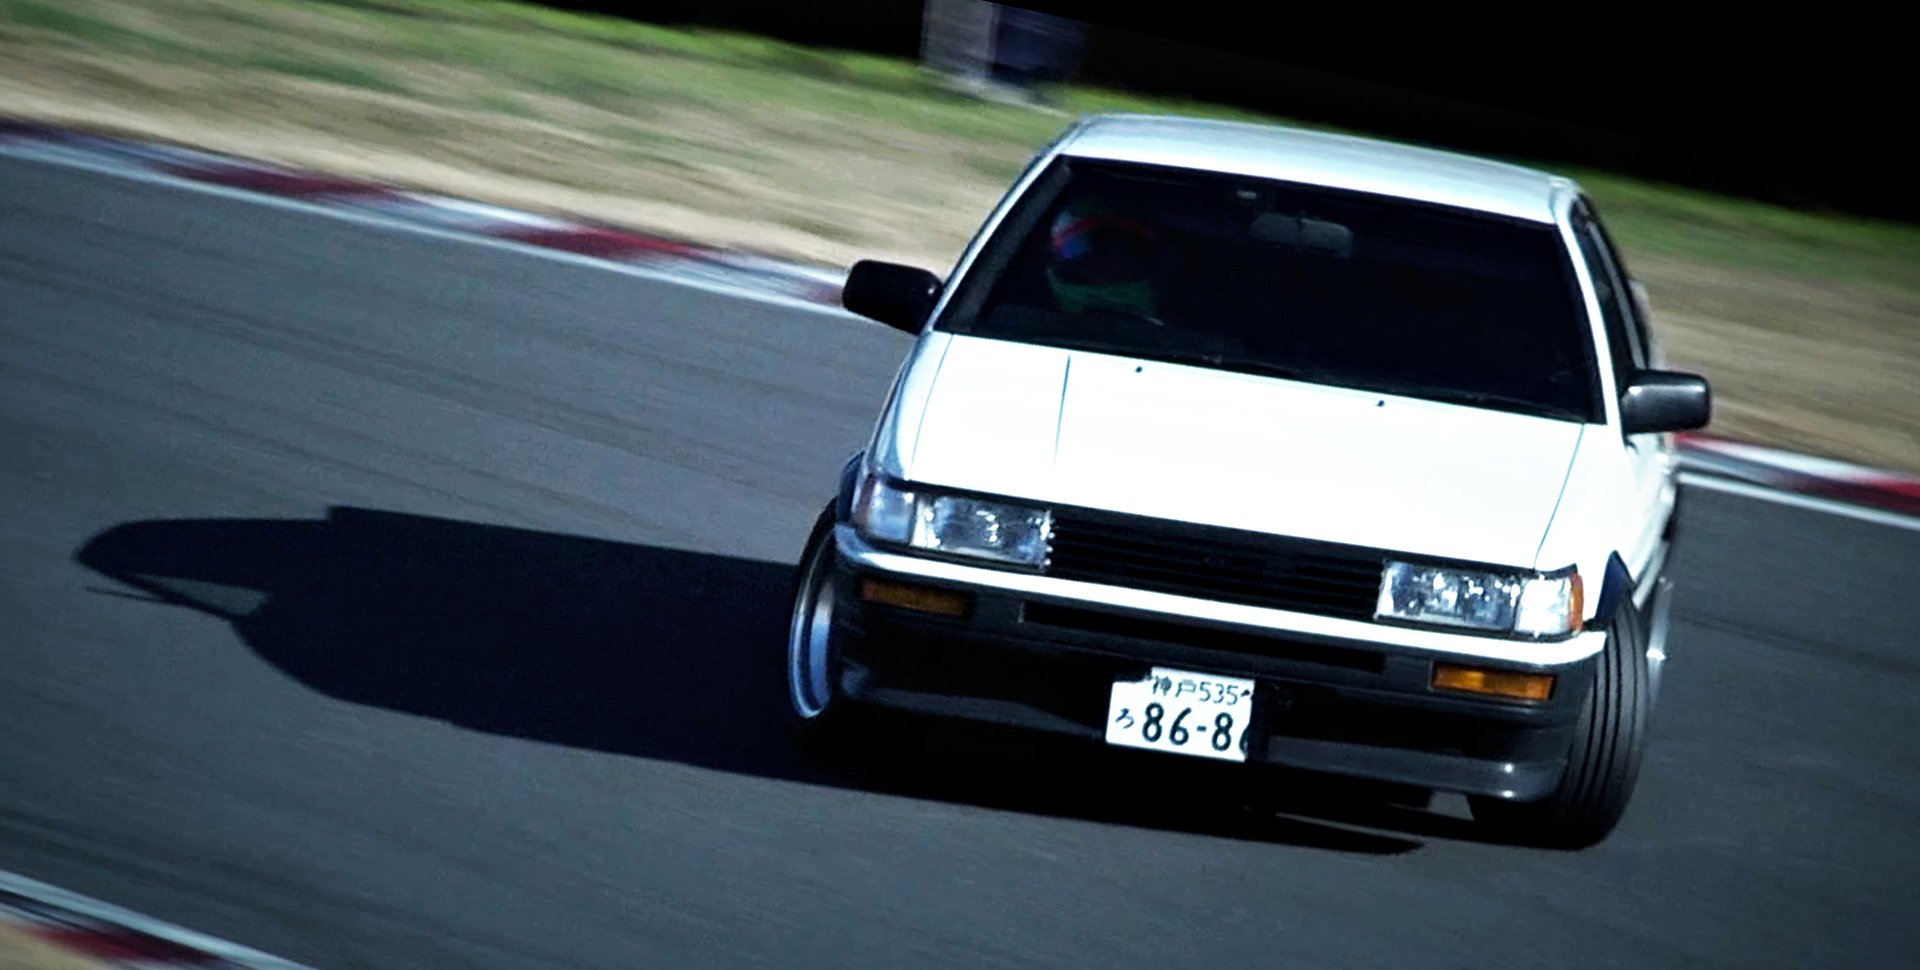 [Movie] Keiichi Tsuchiya's driving impression of the AE86 Corolla Levin | TOYOTA Global Newsroom